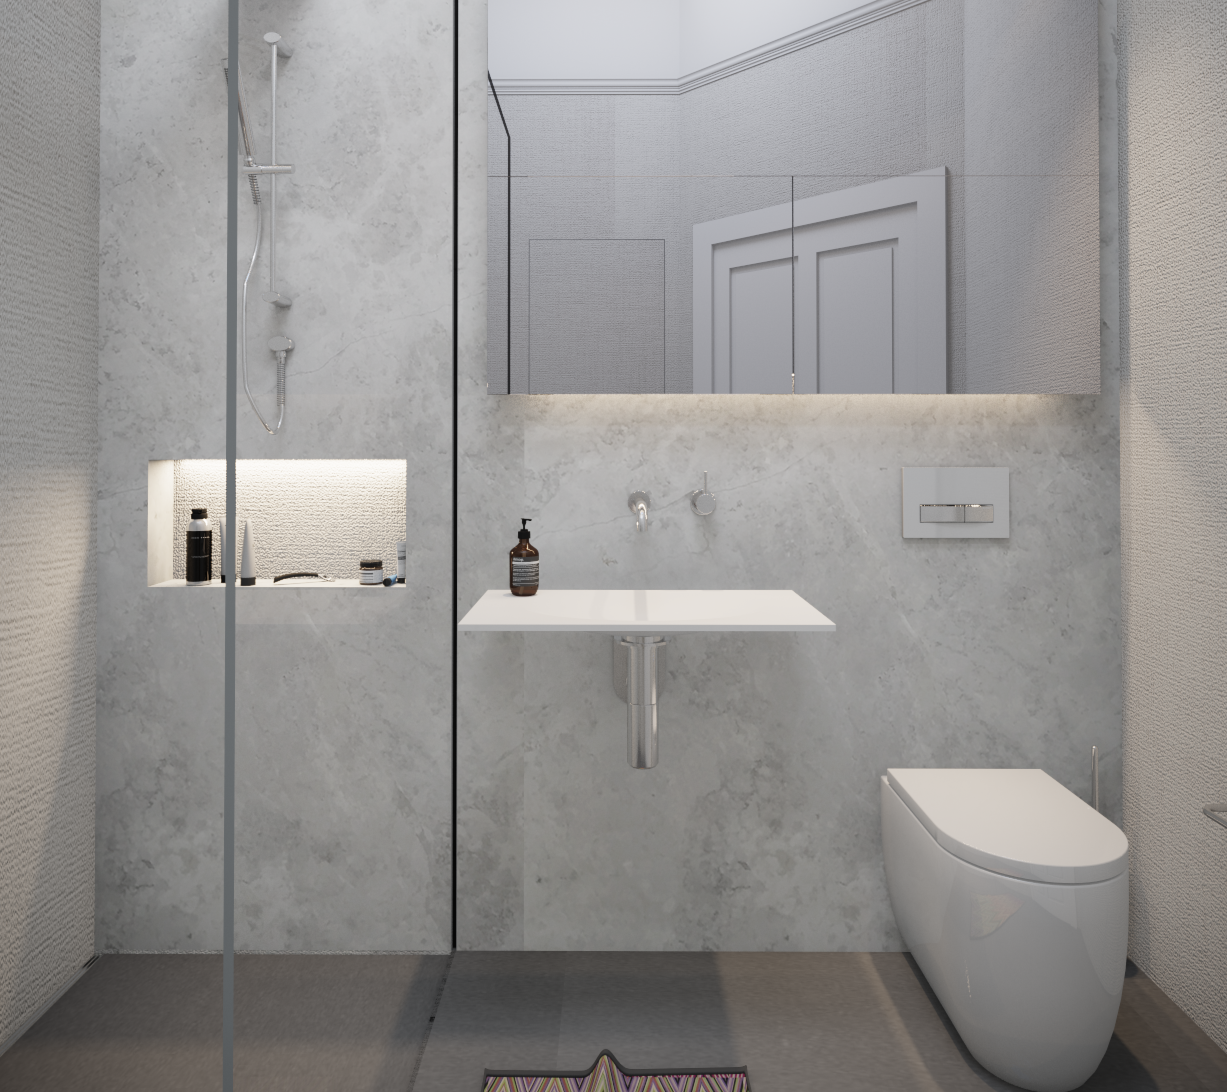 Small Bathrooms Should Look Great To Right? The Most Important Thing About Small  Bathrooms Is Function, So It Is Best To Spend Good Time Considering Your ...